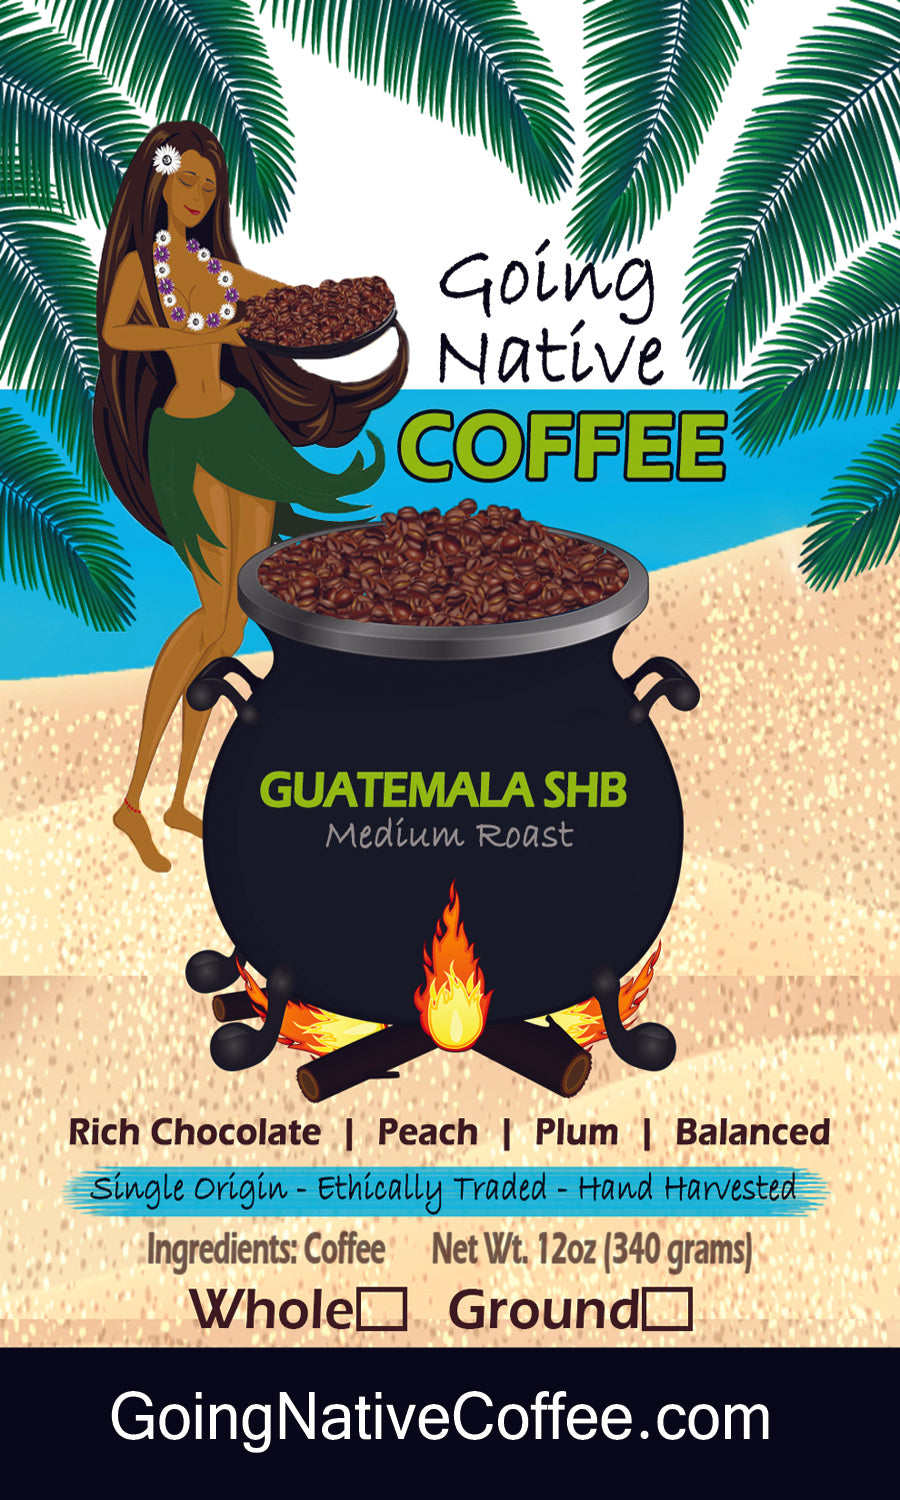 Guatamala SHB Coffee - Going Native Coffee Club